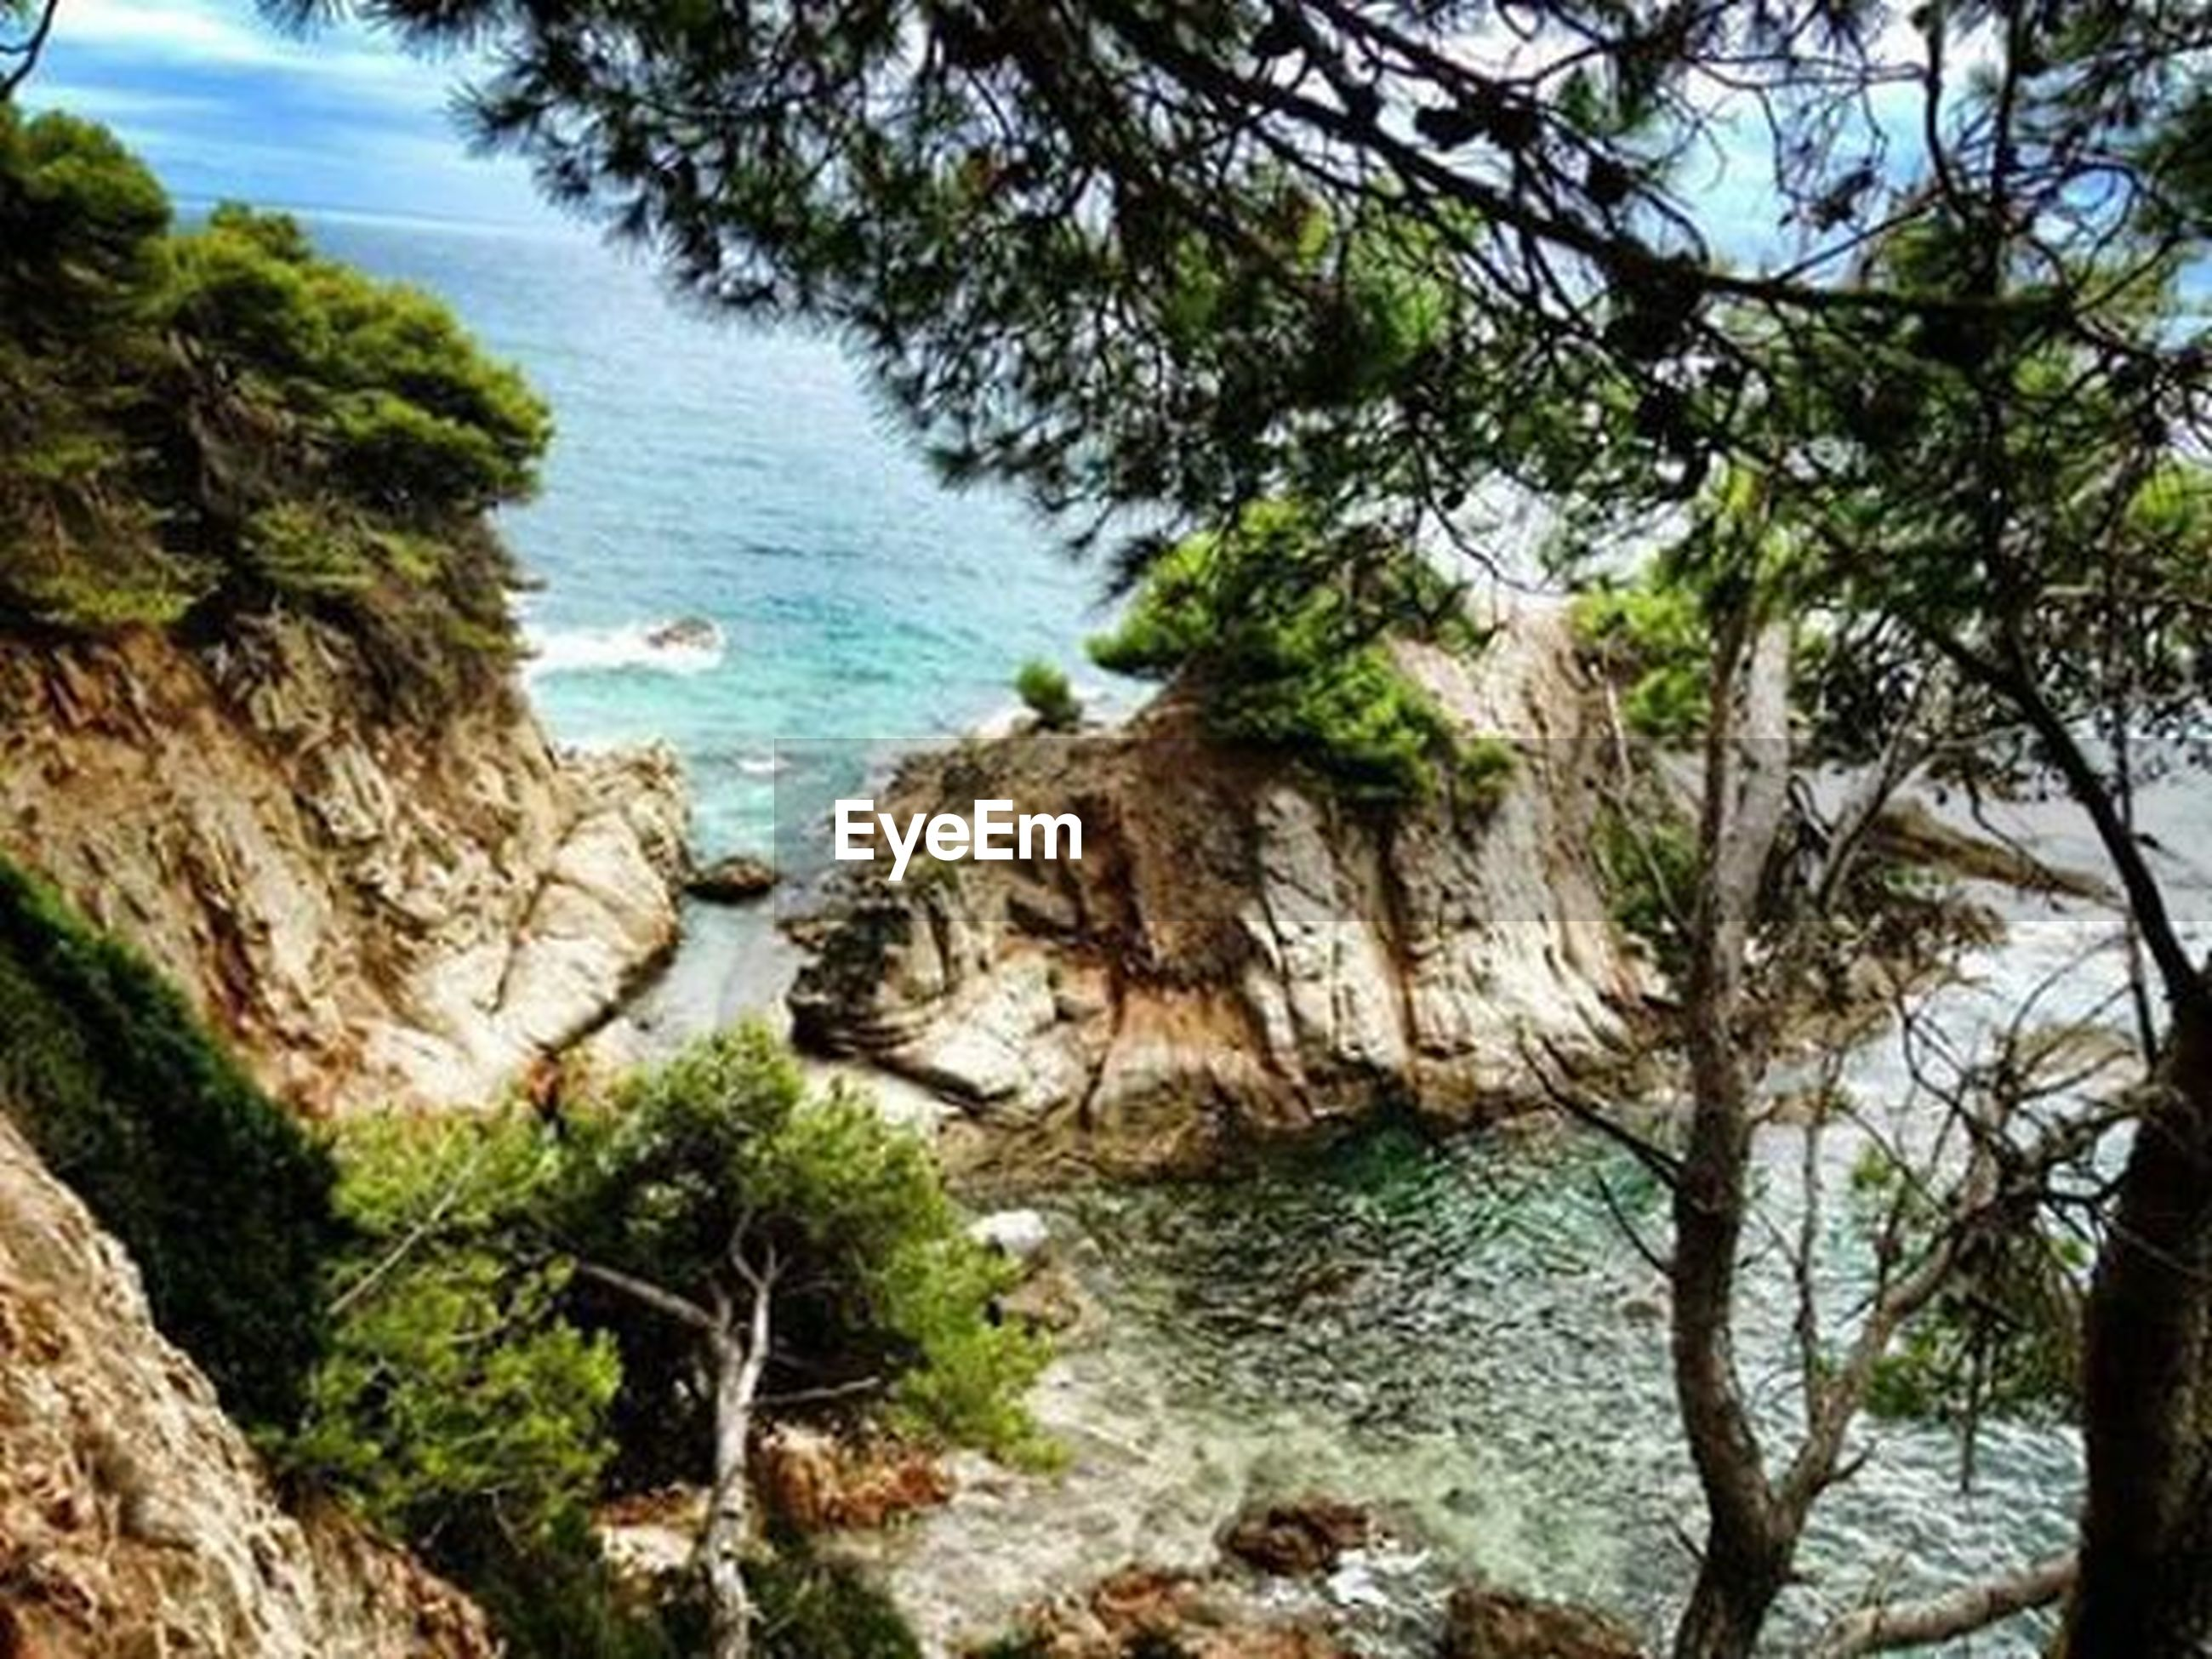 water, tranquility, tranquil scene, sea, tree, beauty in nature, scenics, rock - object, nature, rock formation, sky, rock, cliff, idyllic, day, branch, growth, outdoors, non-urban scene, shore